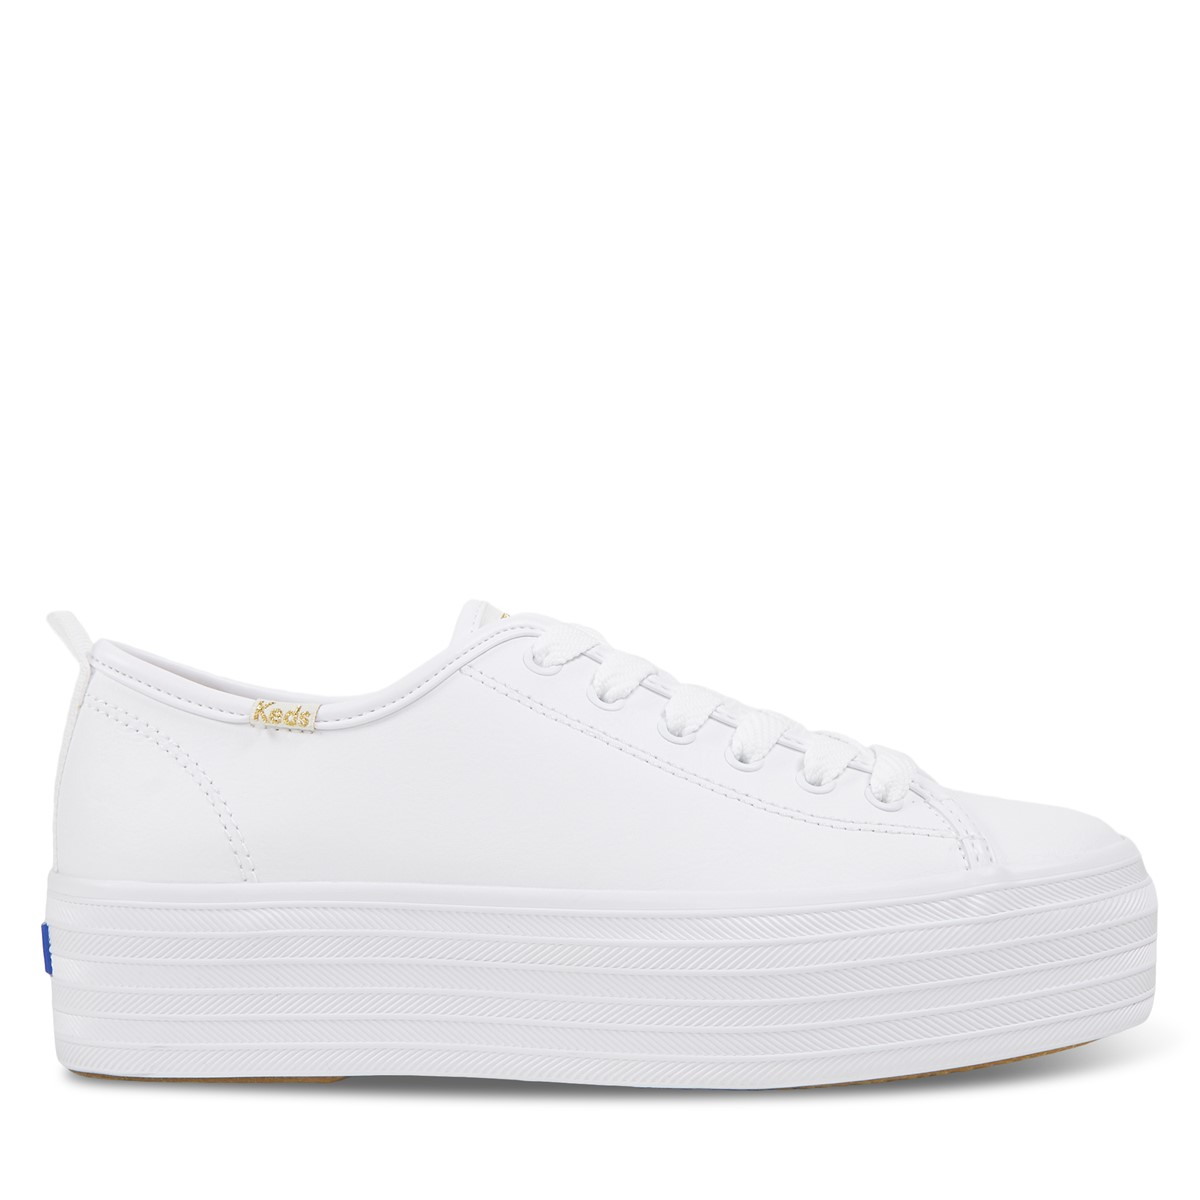 Women's Triple Up Platform Sneakers in White